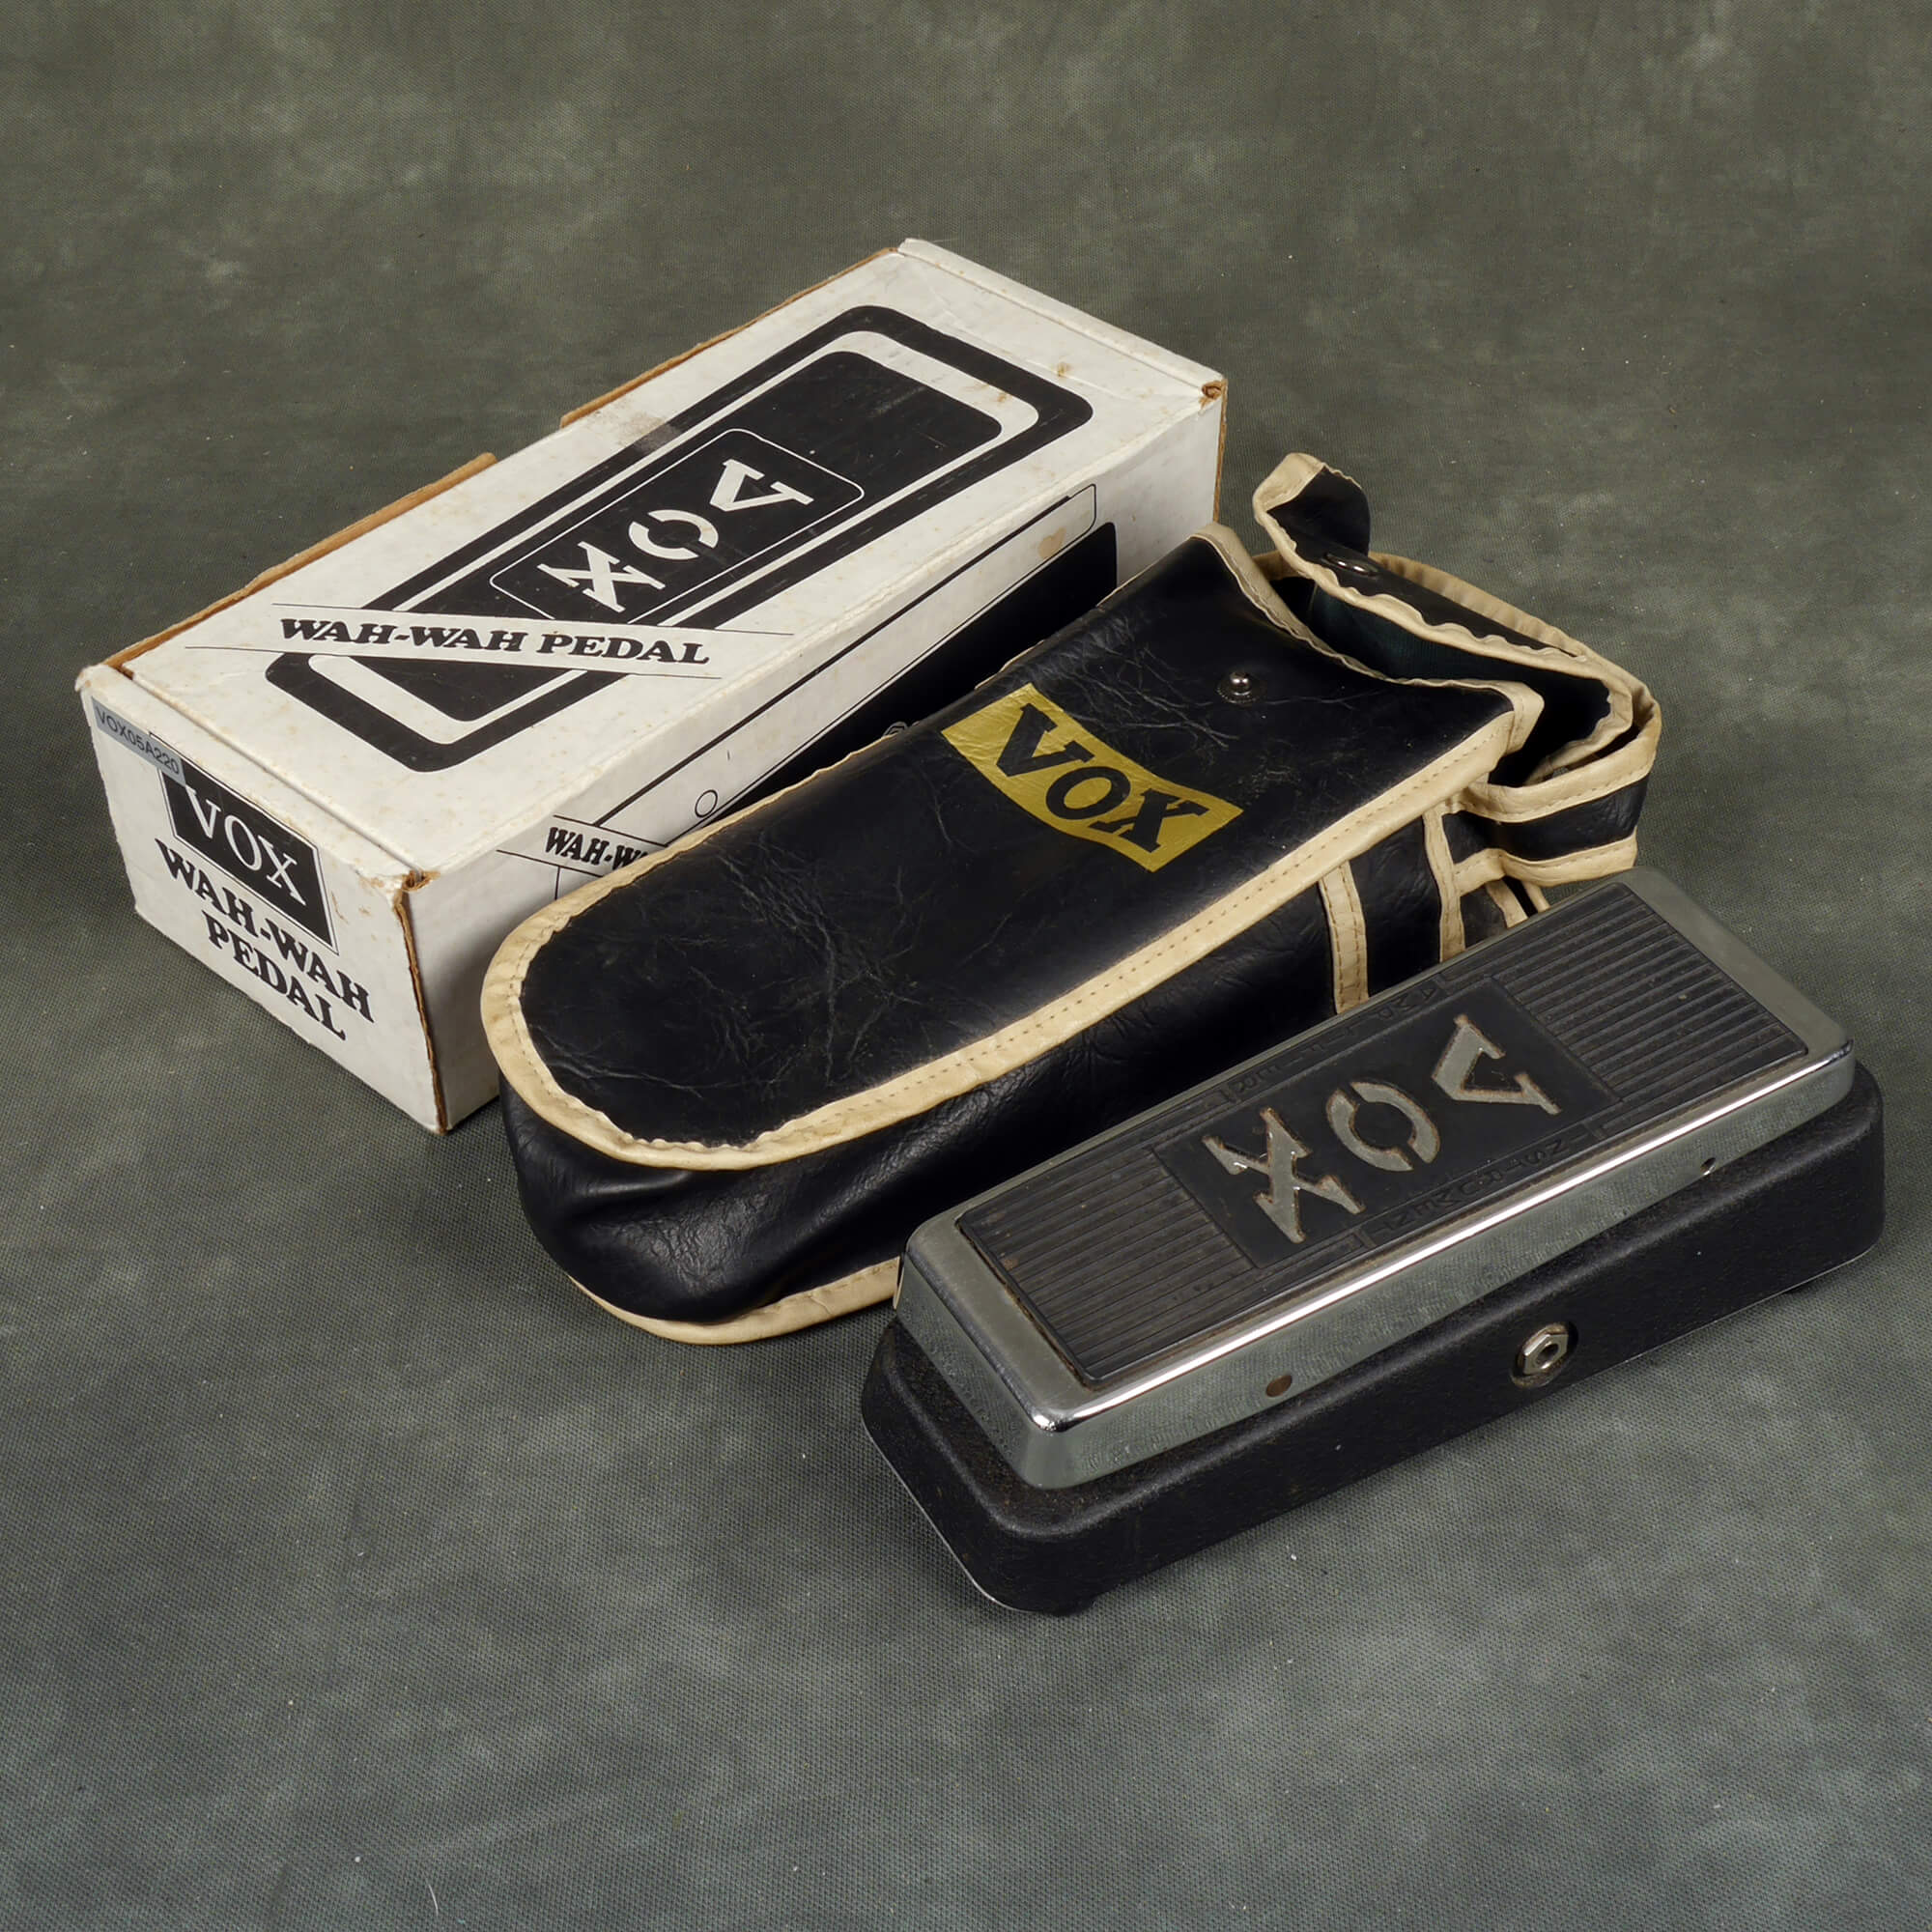 Vox V847 USA Made Wah Pedal w/Box - 2nd Hand